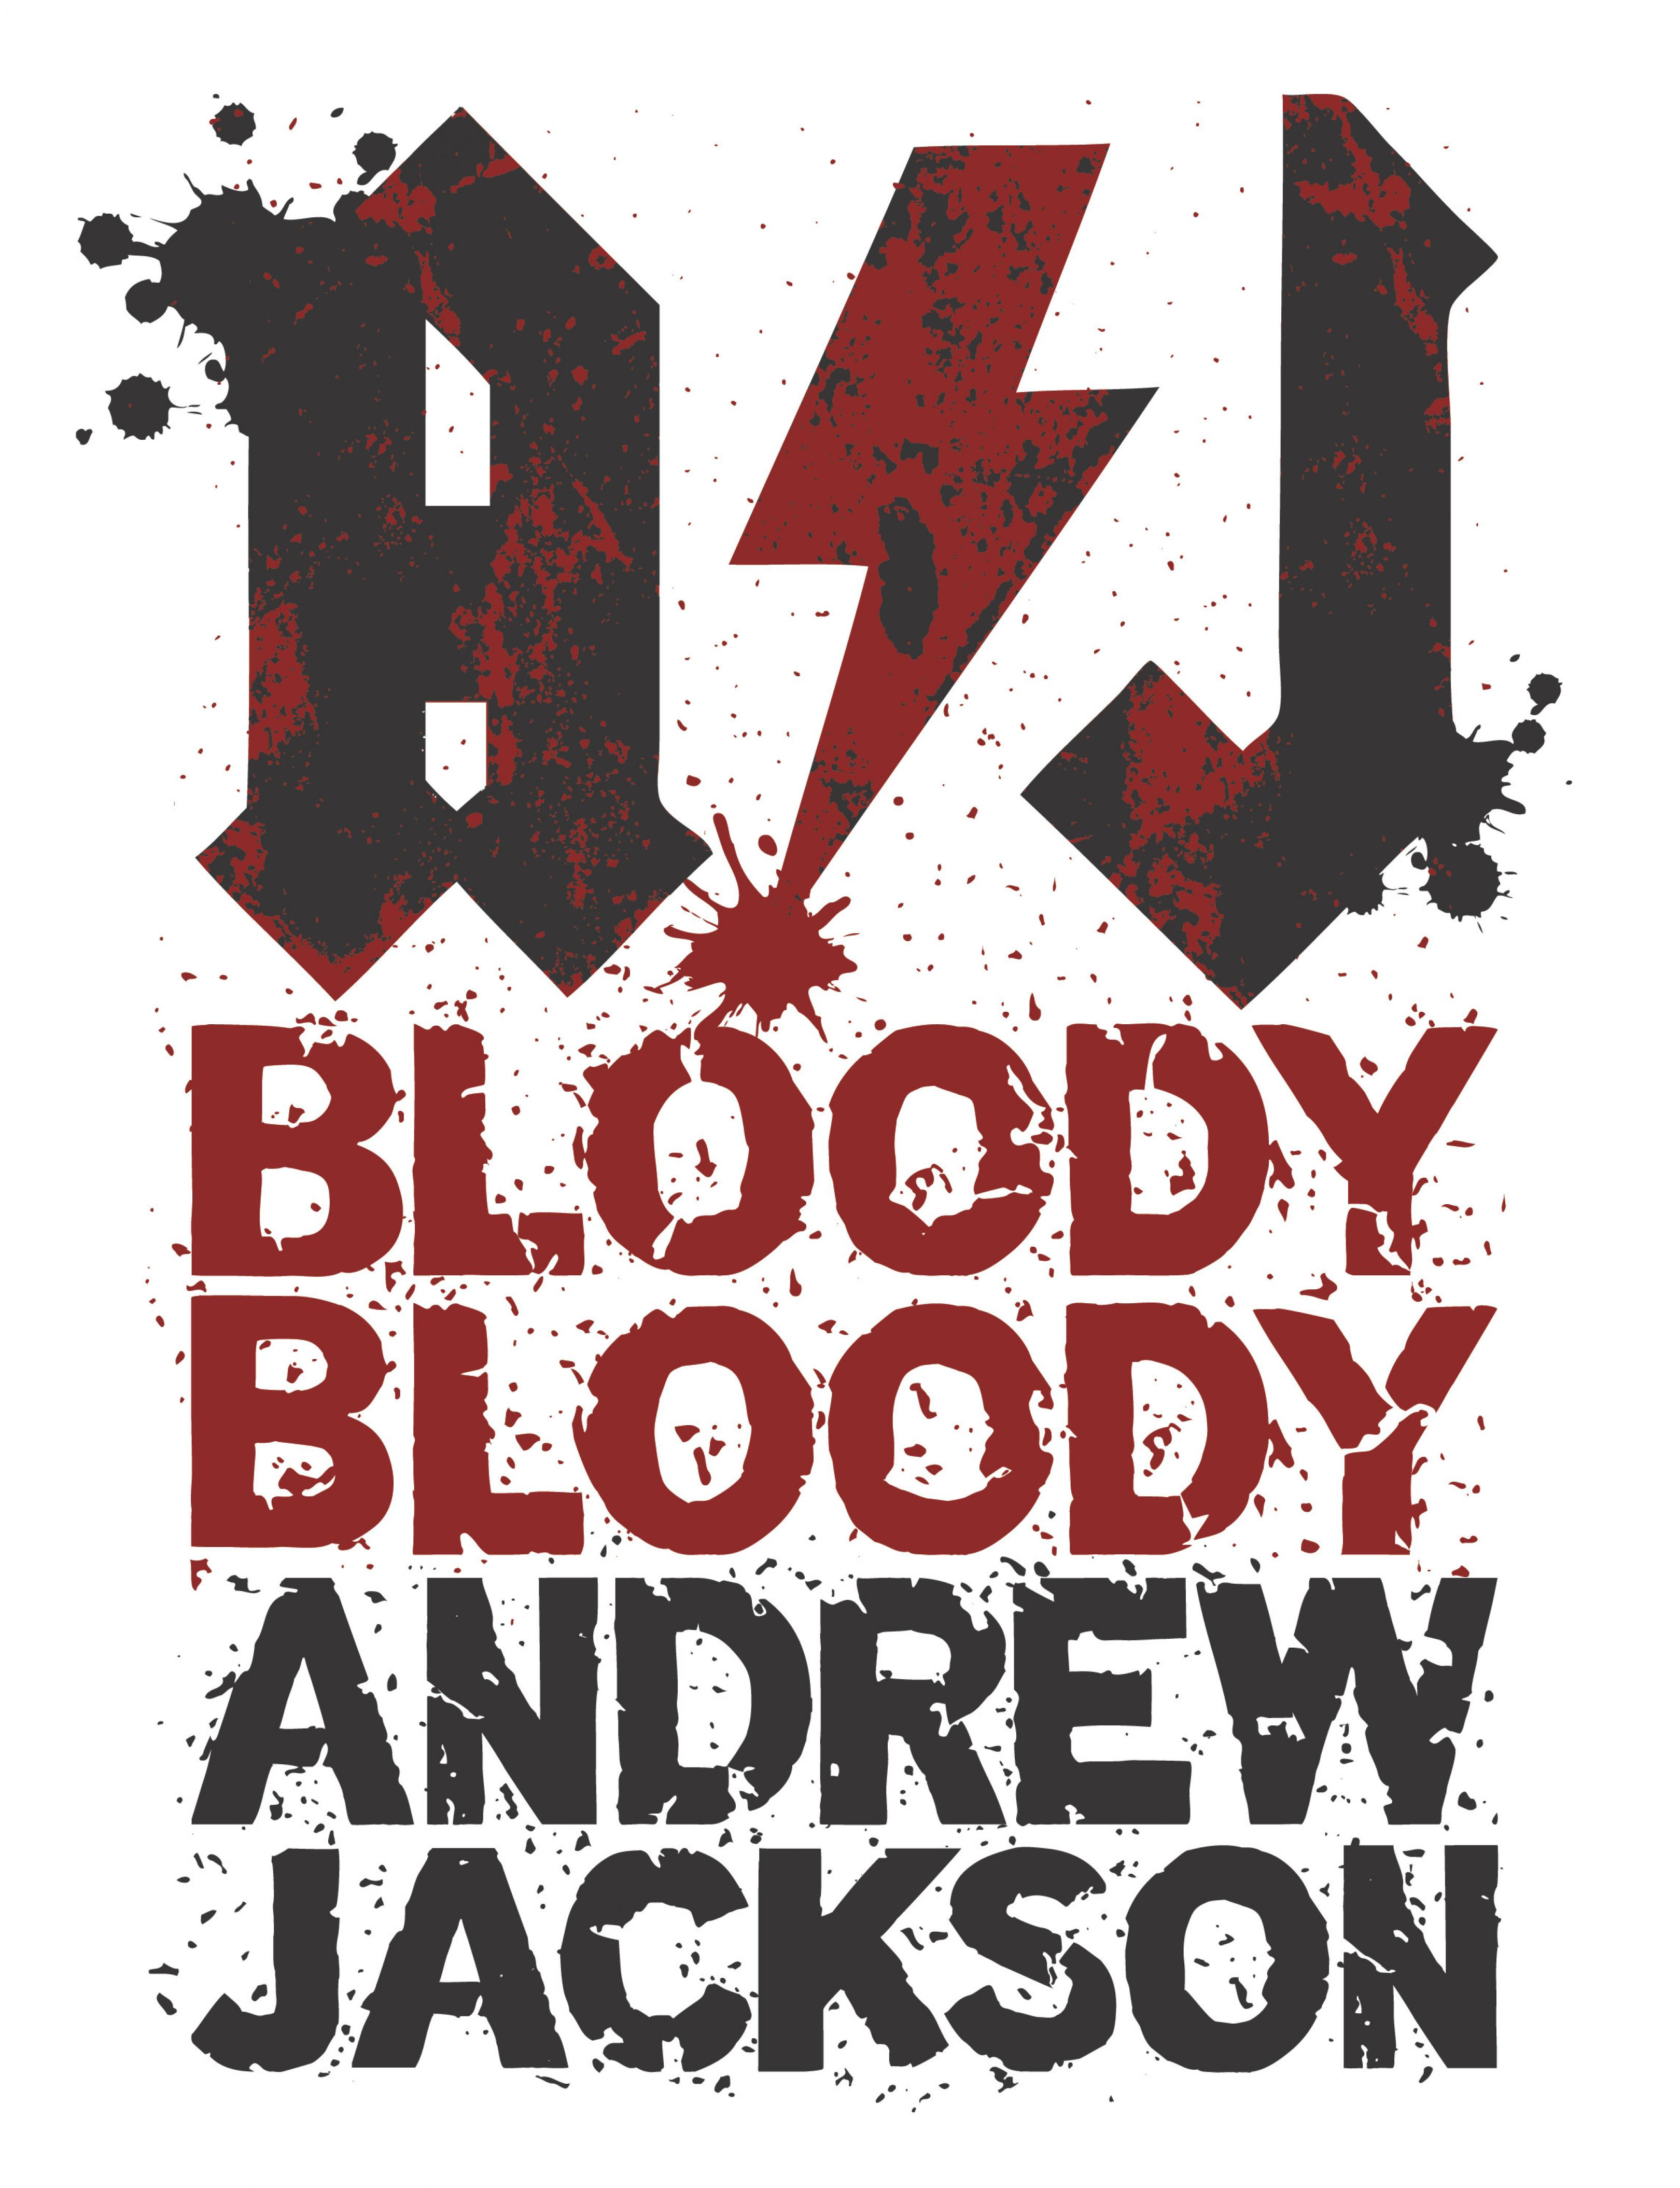 publicity image for Bloody Bloody Andrew Jackson